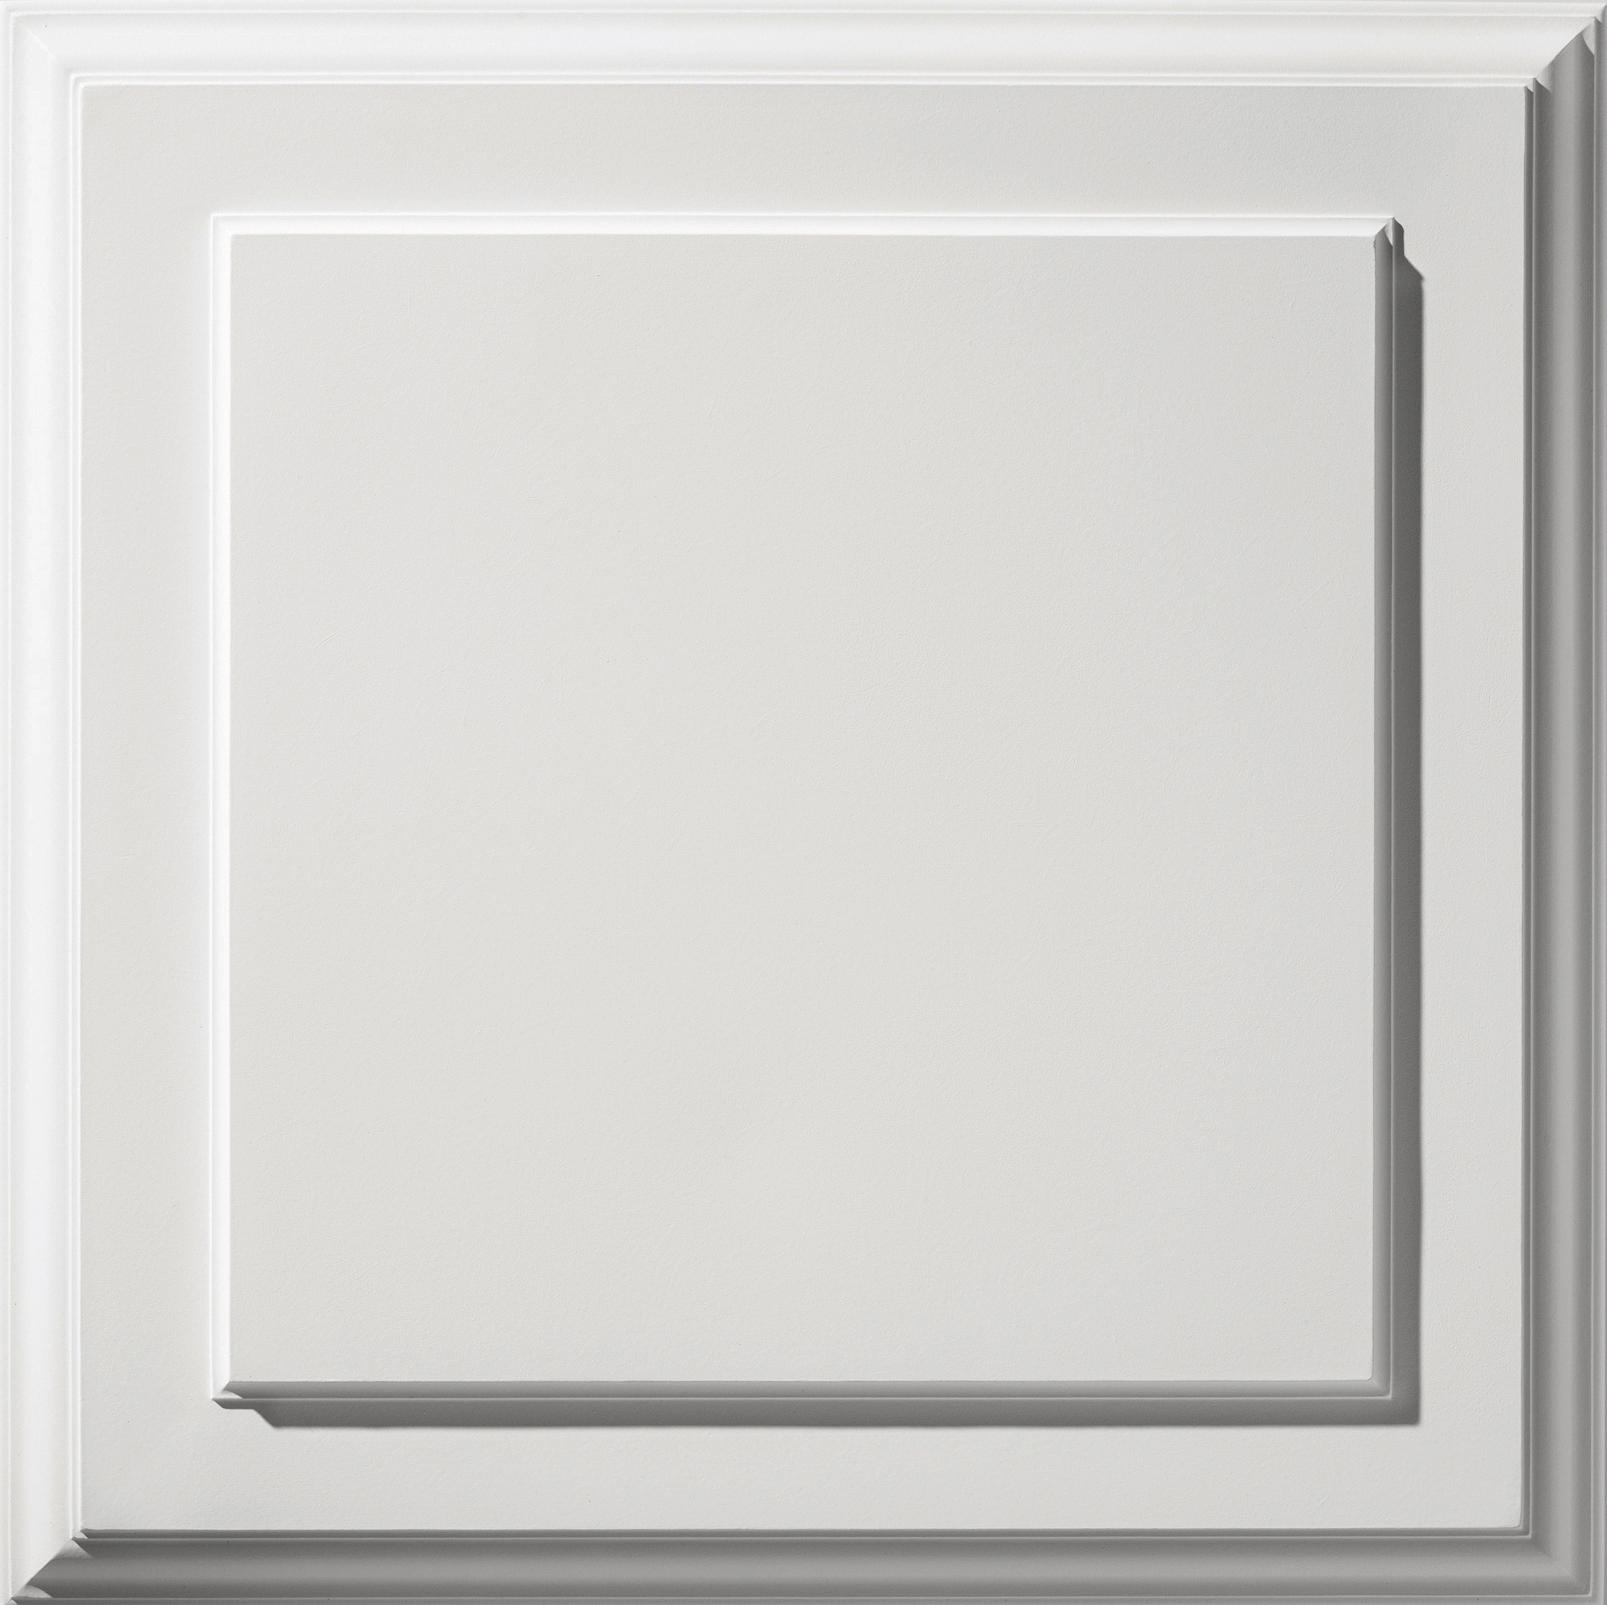 Executive tegular ceiling tile mineral composite panels from executive tegular ceiling tile by above view inc mineral composite panels dailygadgetfo Gallery